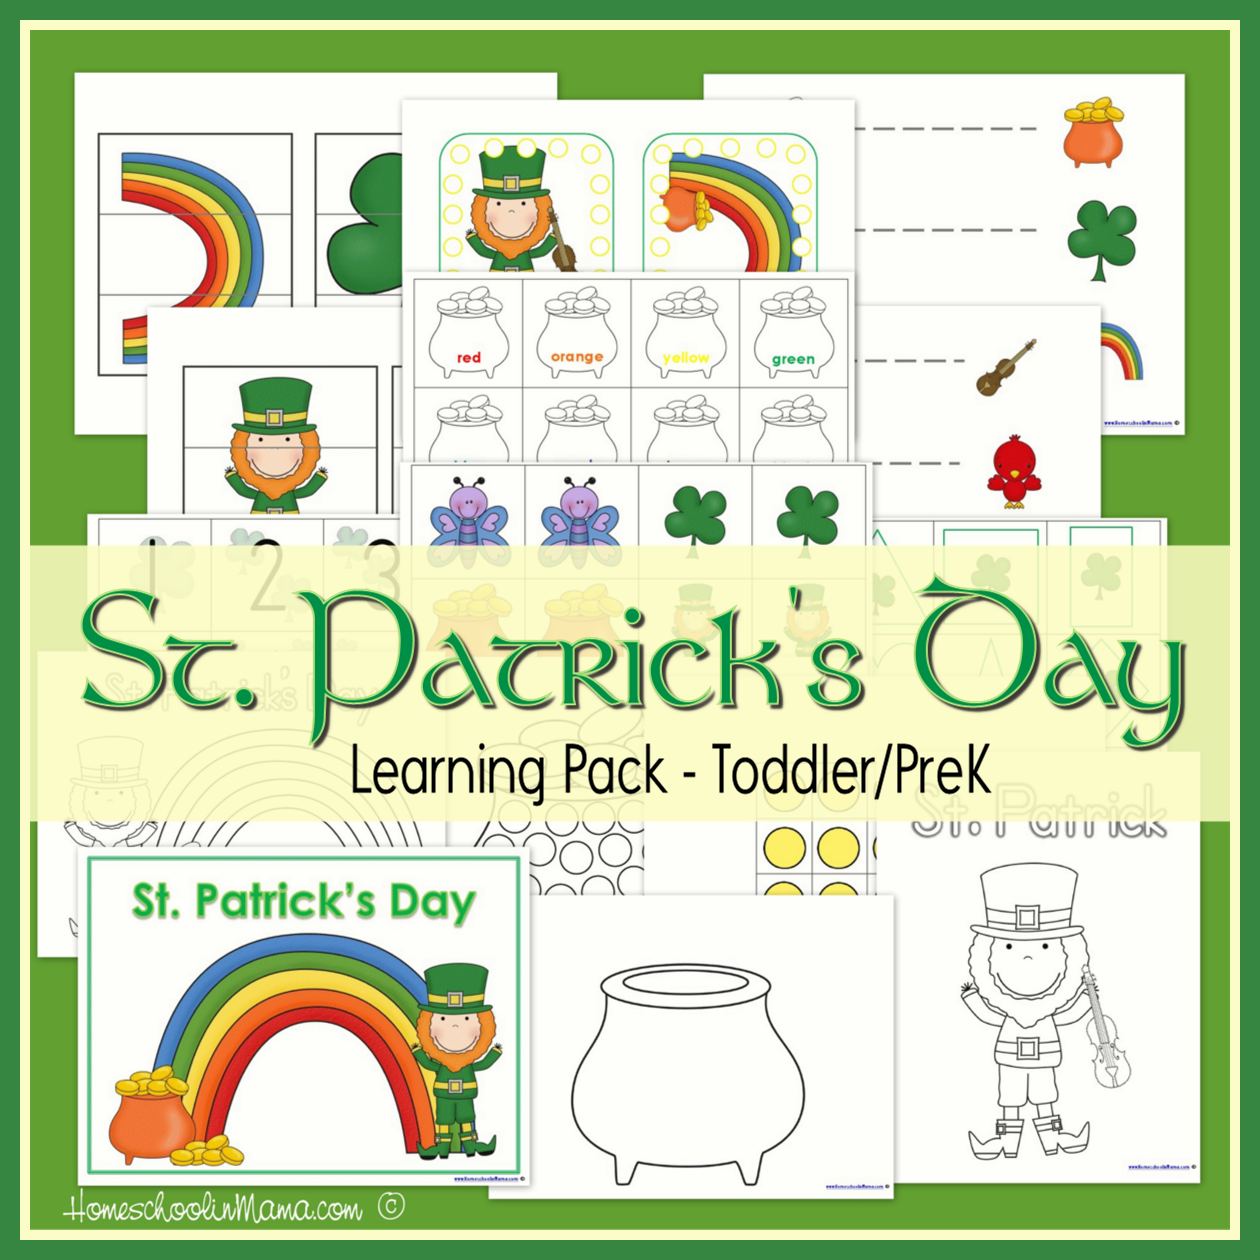 St. Patrick's Day Learning Packs